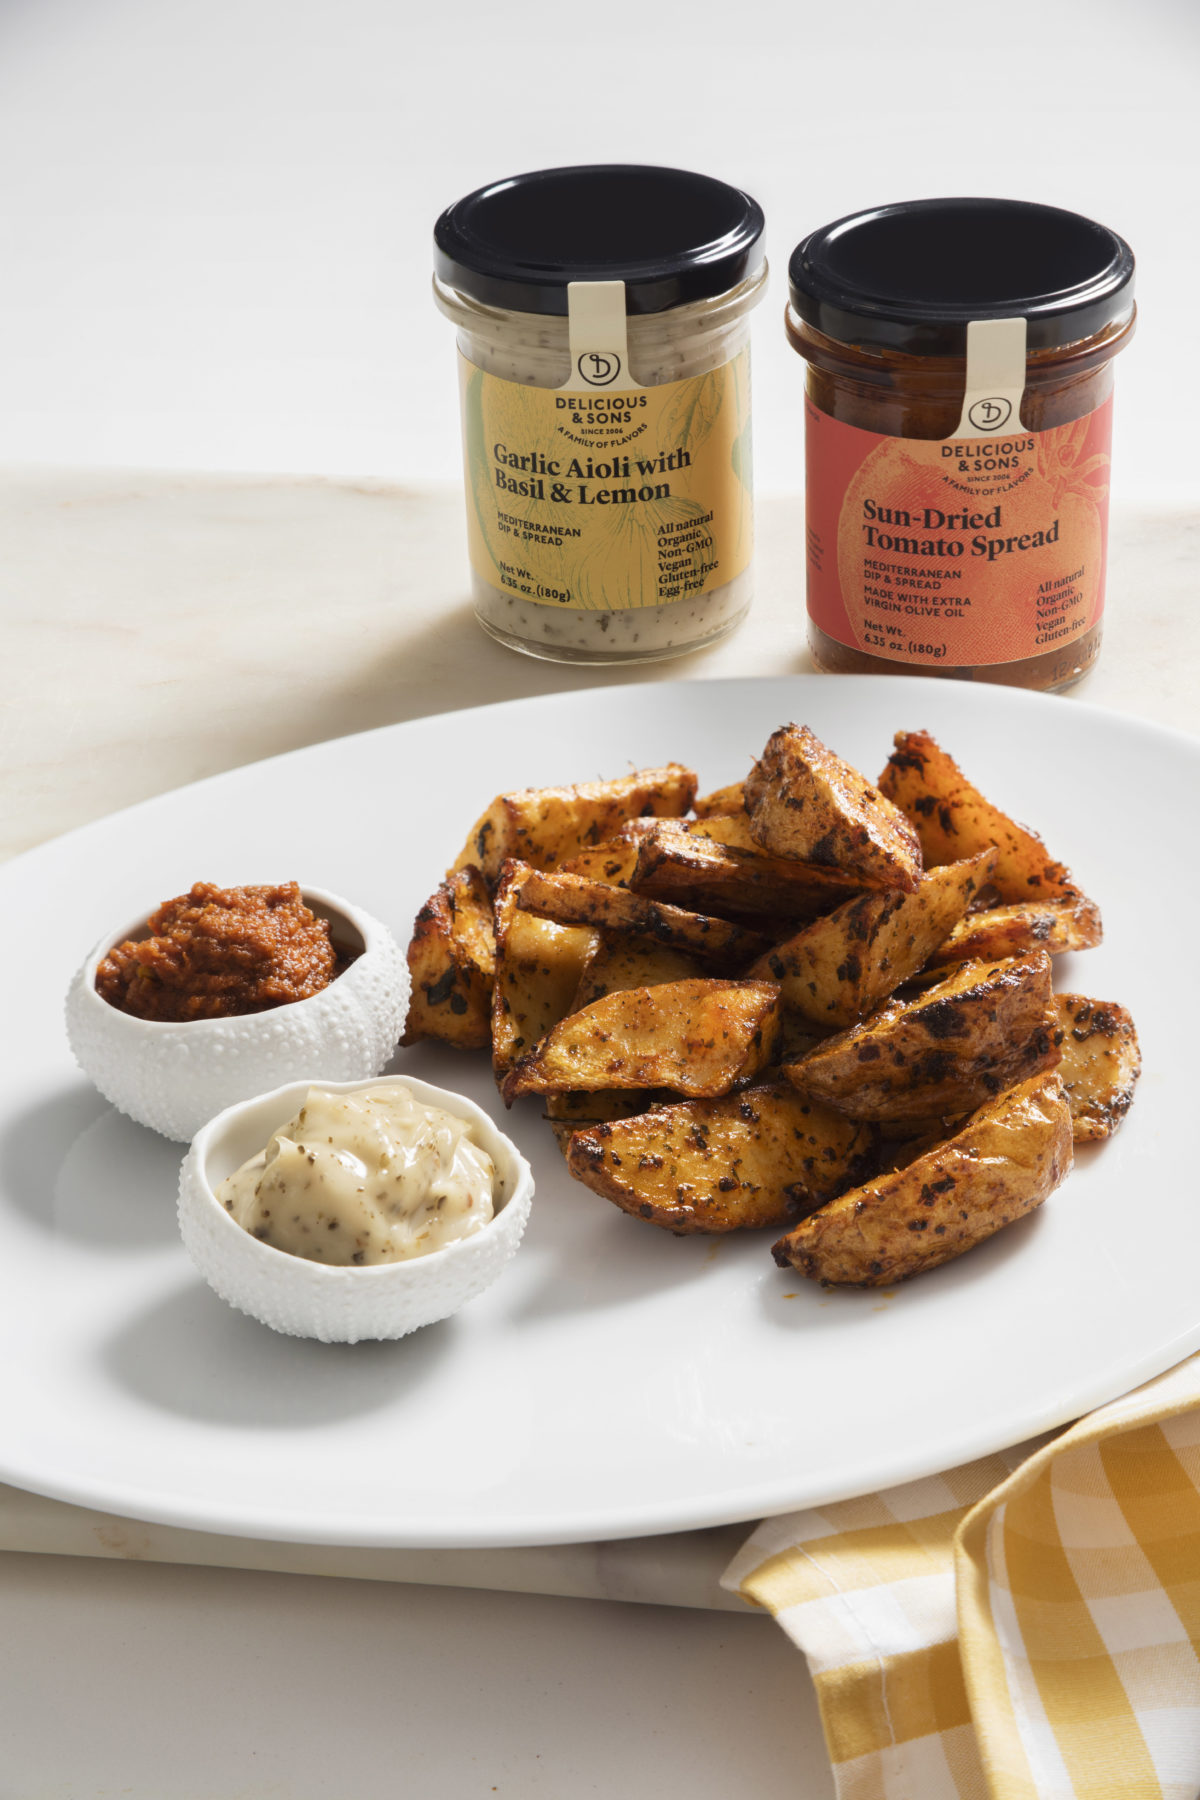 Patatas Bravas with Basil & Lemon Aioli and Sun-Dried Tomato Spread by Míriam Fabà — Delicious & Sons